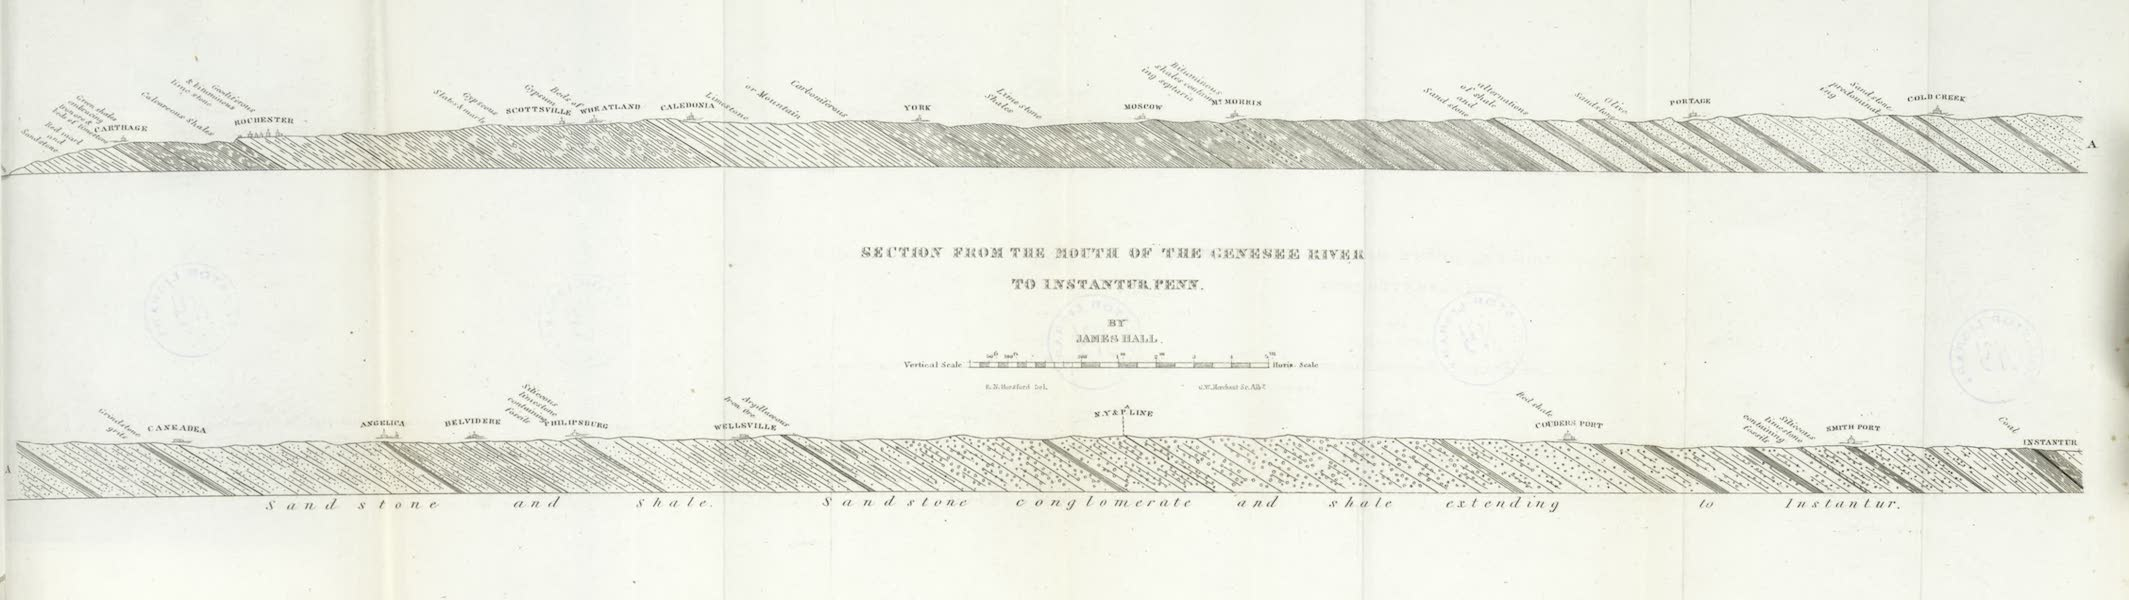 Views of the Adirondack Mountain Region - Section from the Mouth of the Genesee River to Instantur, Penn. (1838)